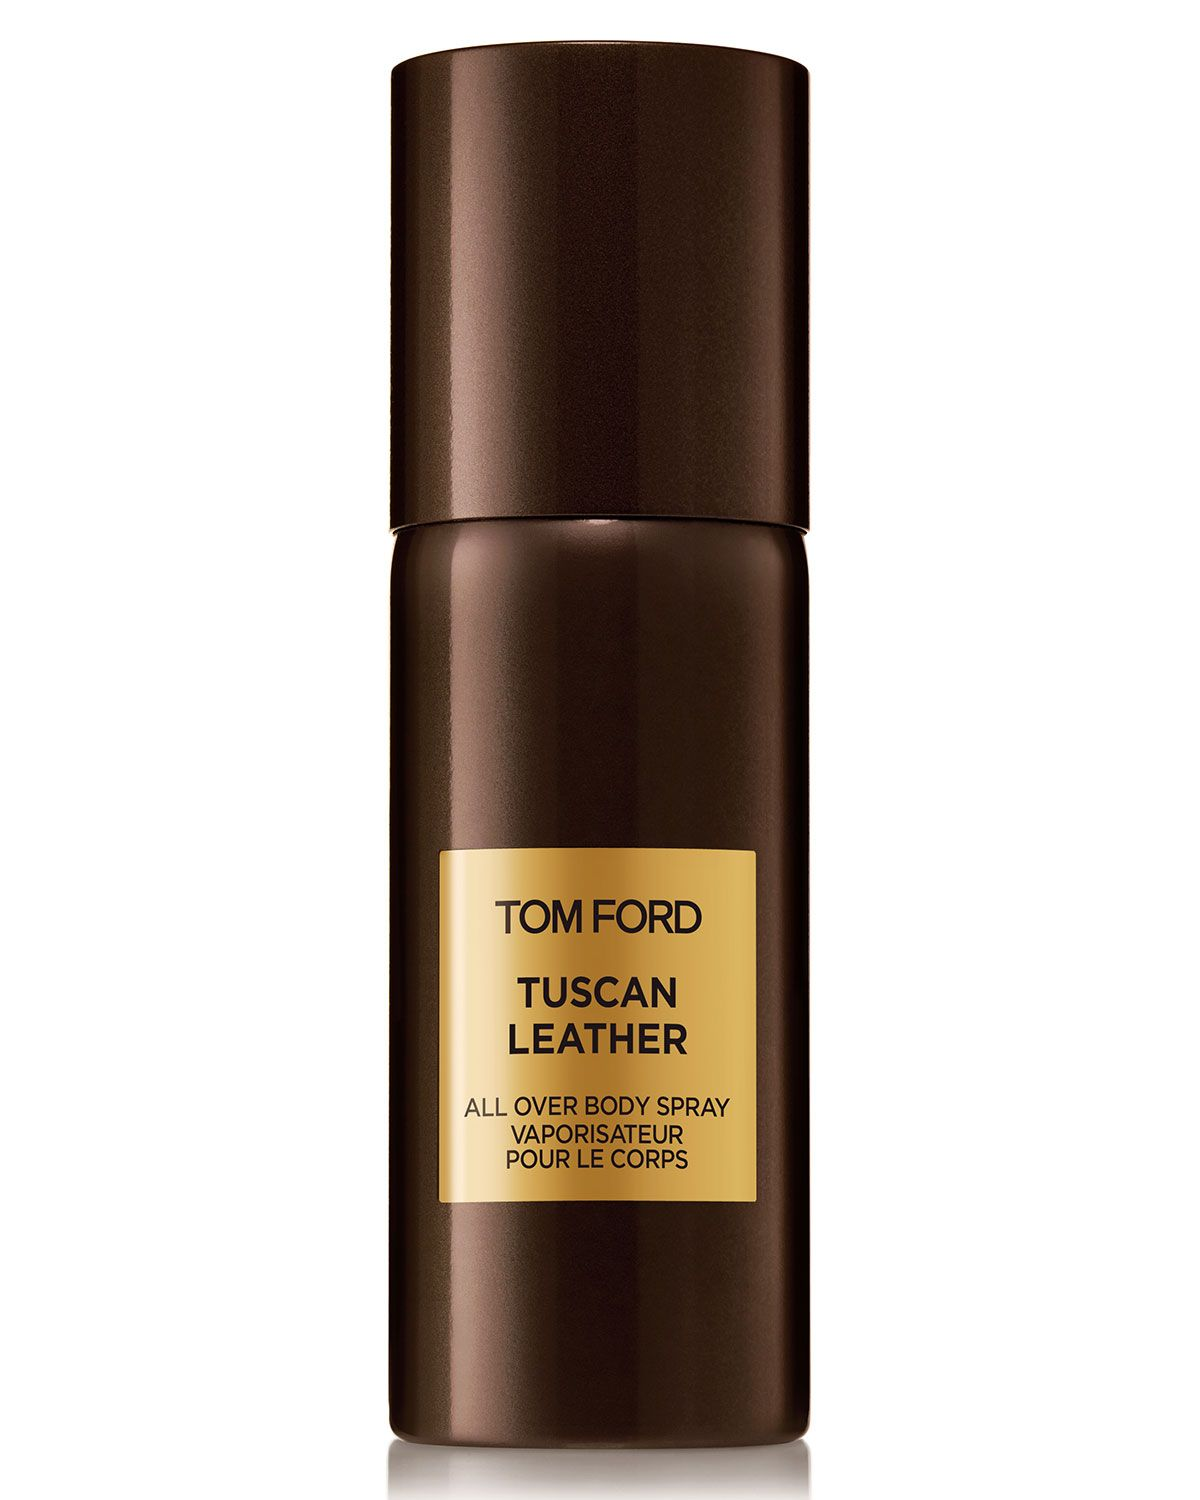 51c58a472f74 Tom Ford Tuscan Leather All Over Body Spray